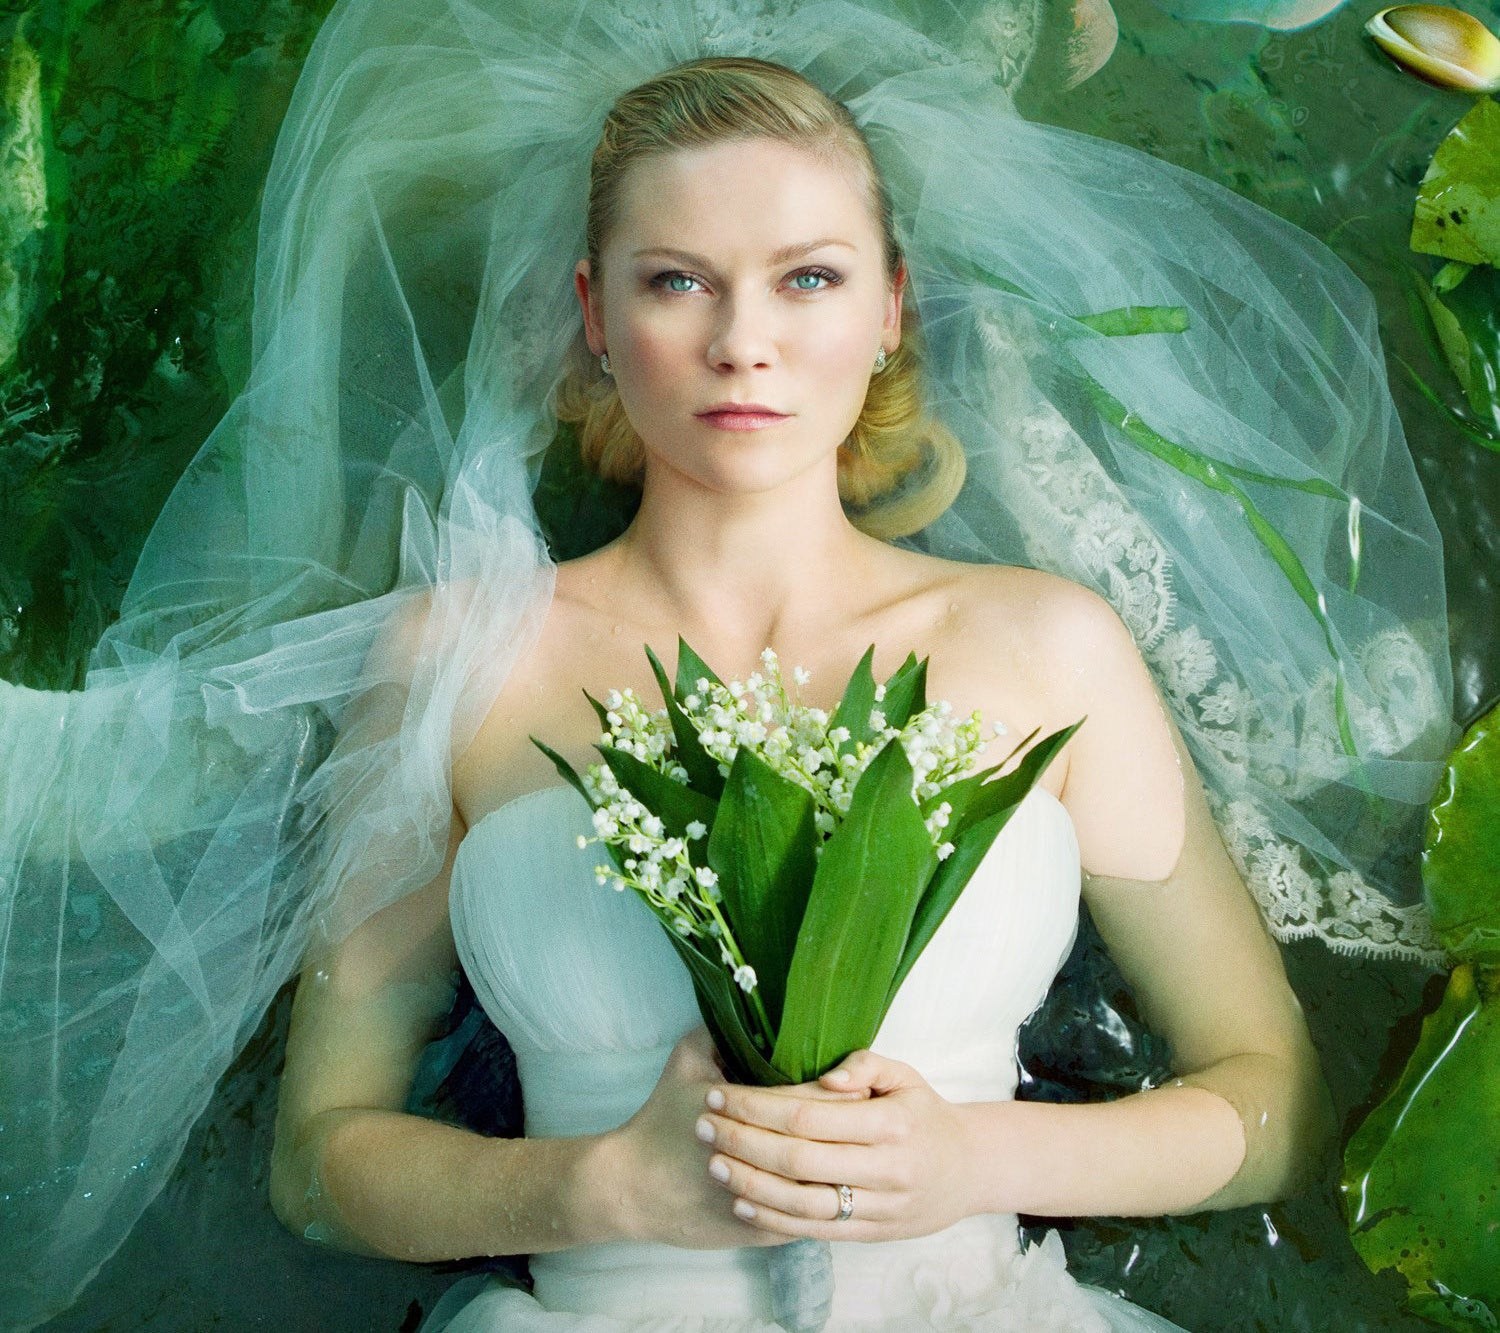 Dunst looking sad in a stunning wedding gown in the movie melancholia